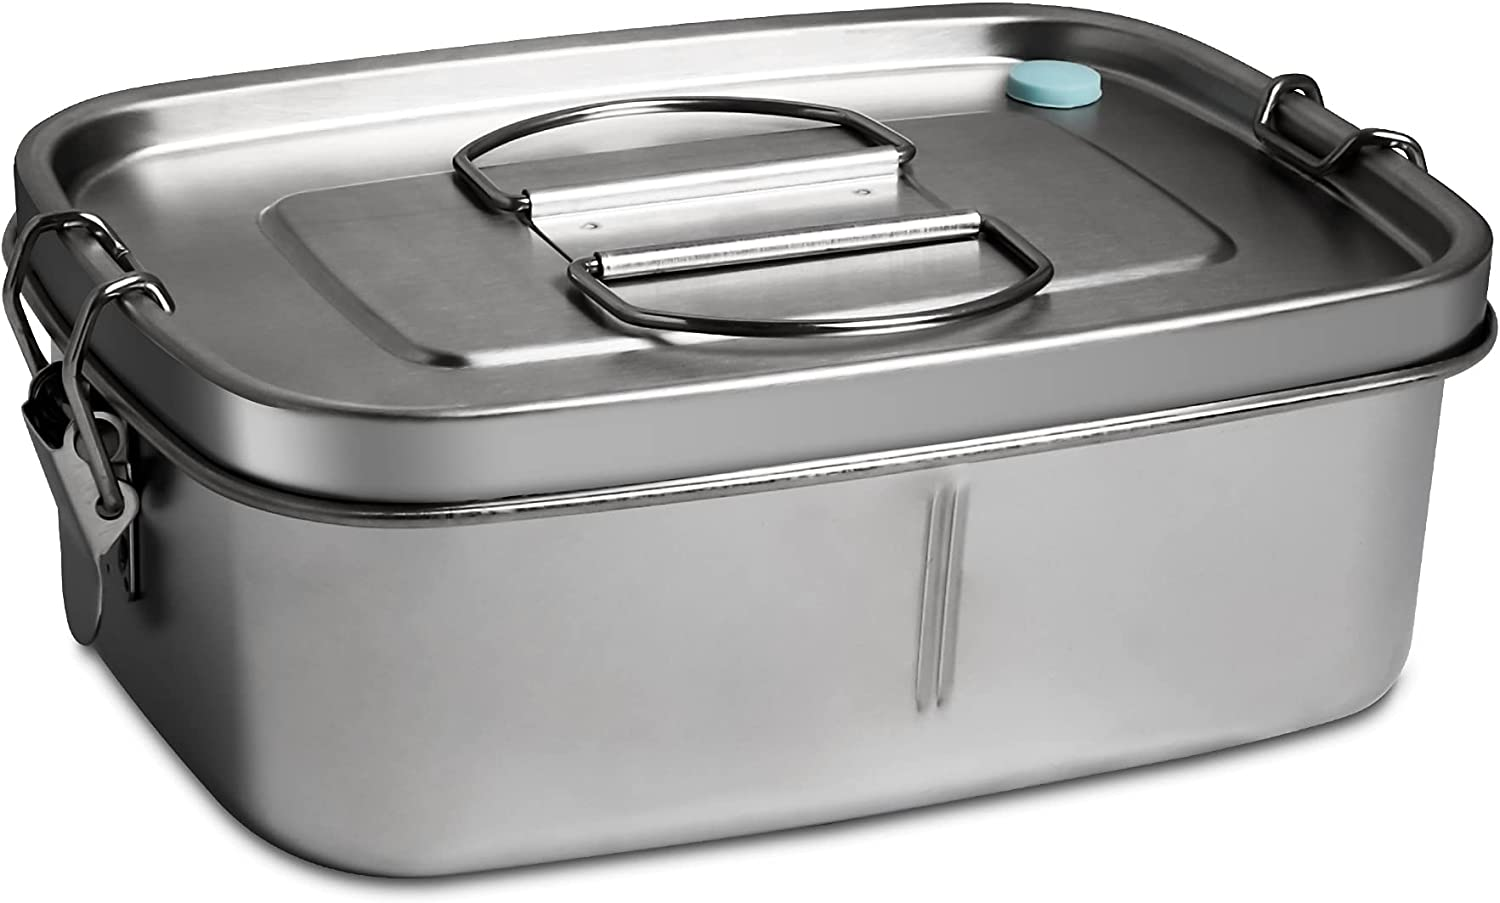 Afranti Stainless Steel Bento Lunch Box, Leak-Proof Bento Lunch Container for Kids Stainless Steel Bento Lunch Box for Adults Bento Box for Sandwich, Pasta and Fruit, Perfect for Work School Lunch